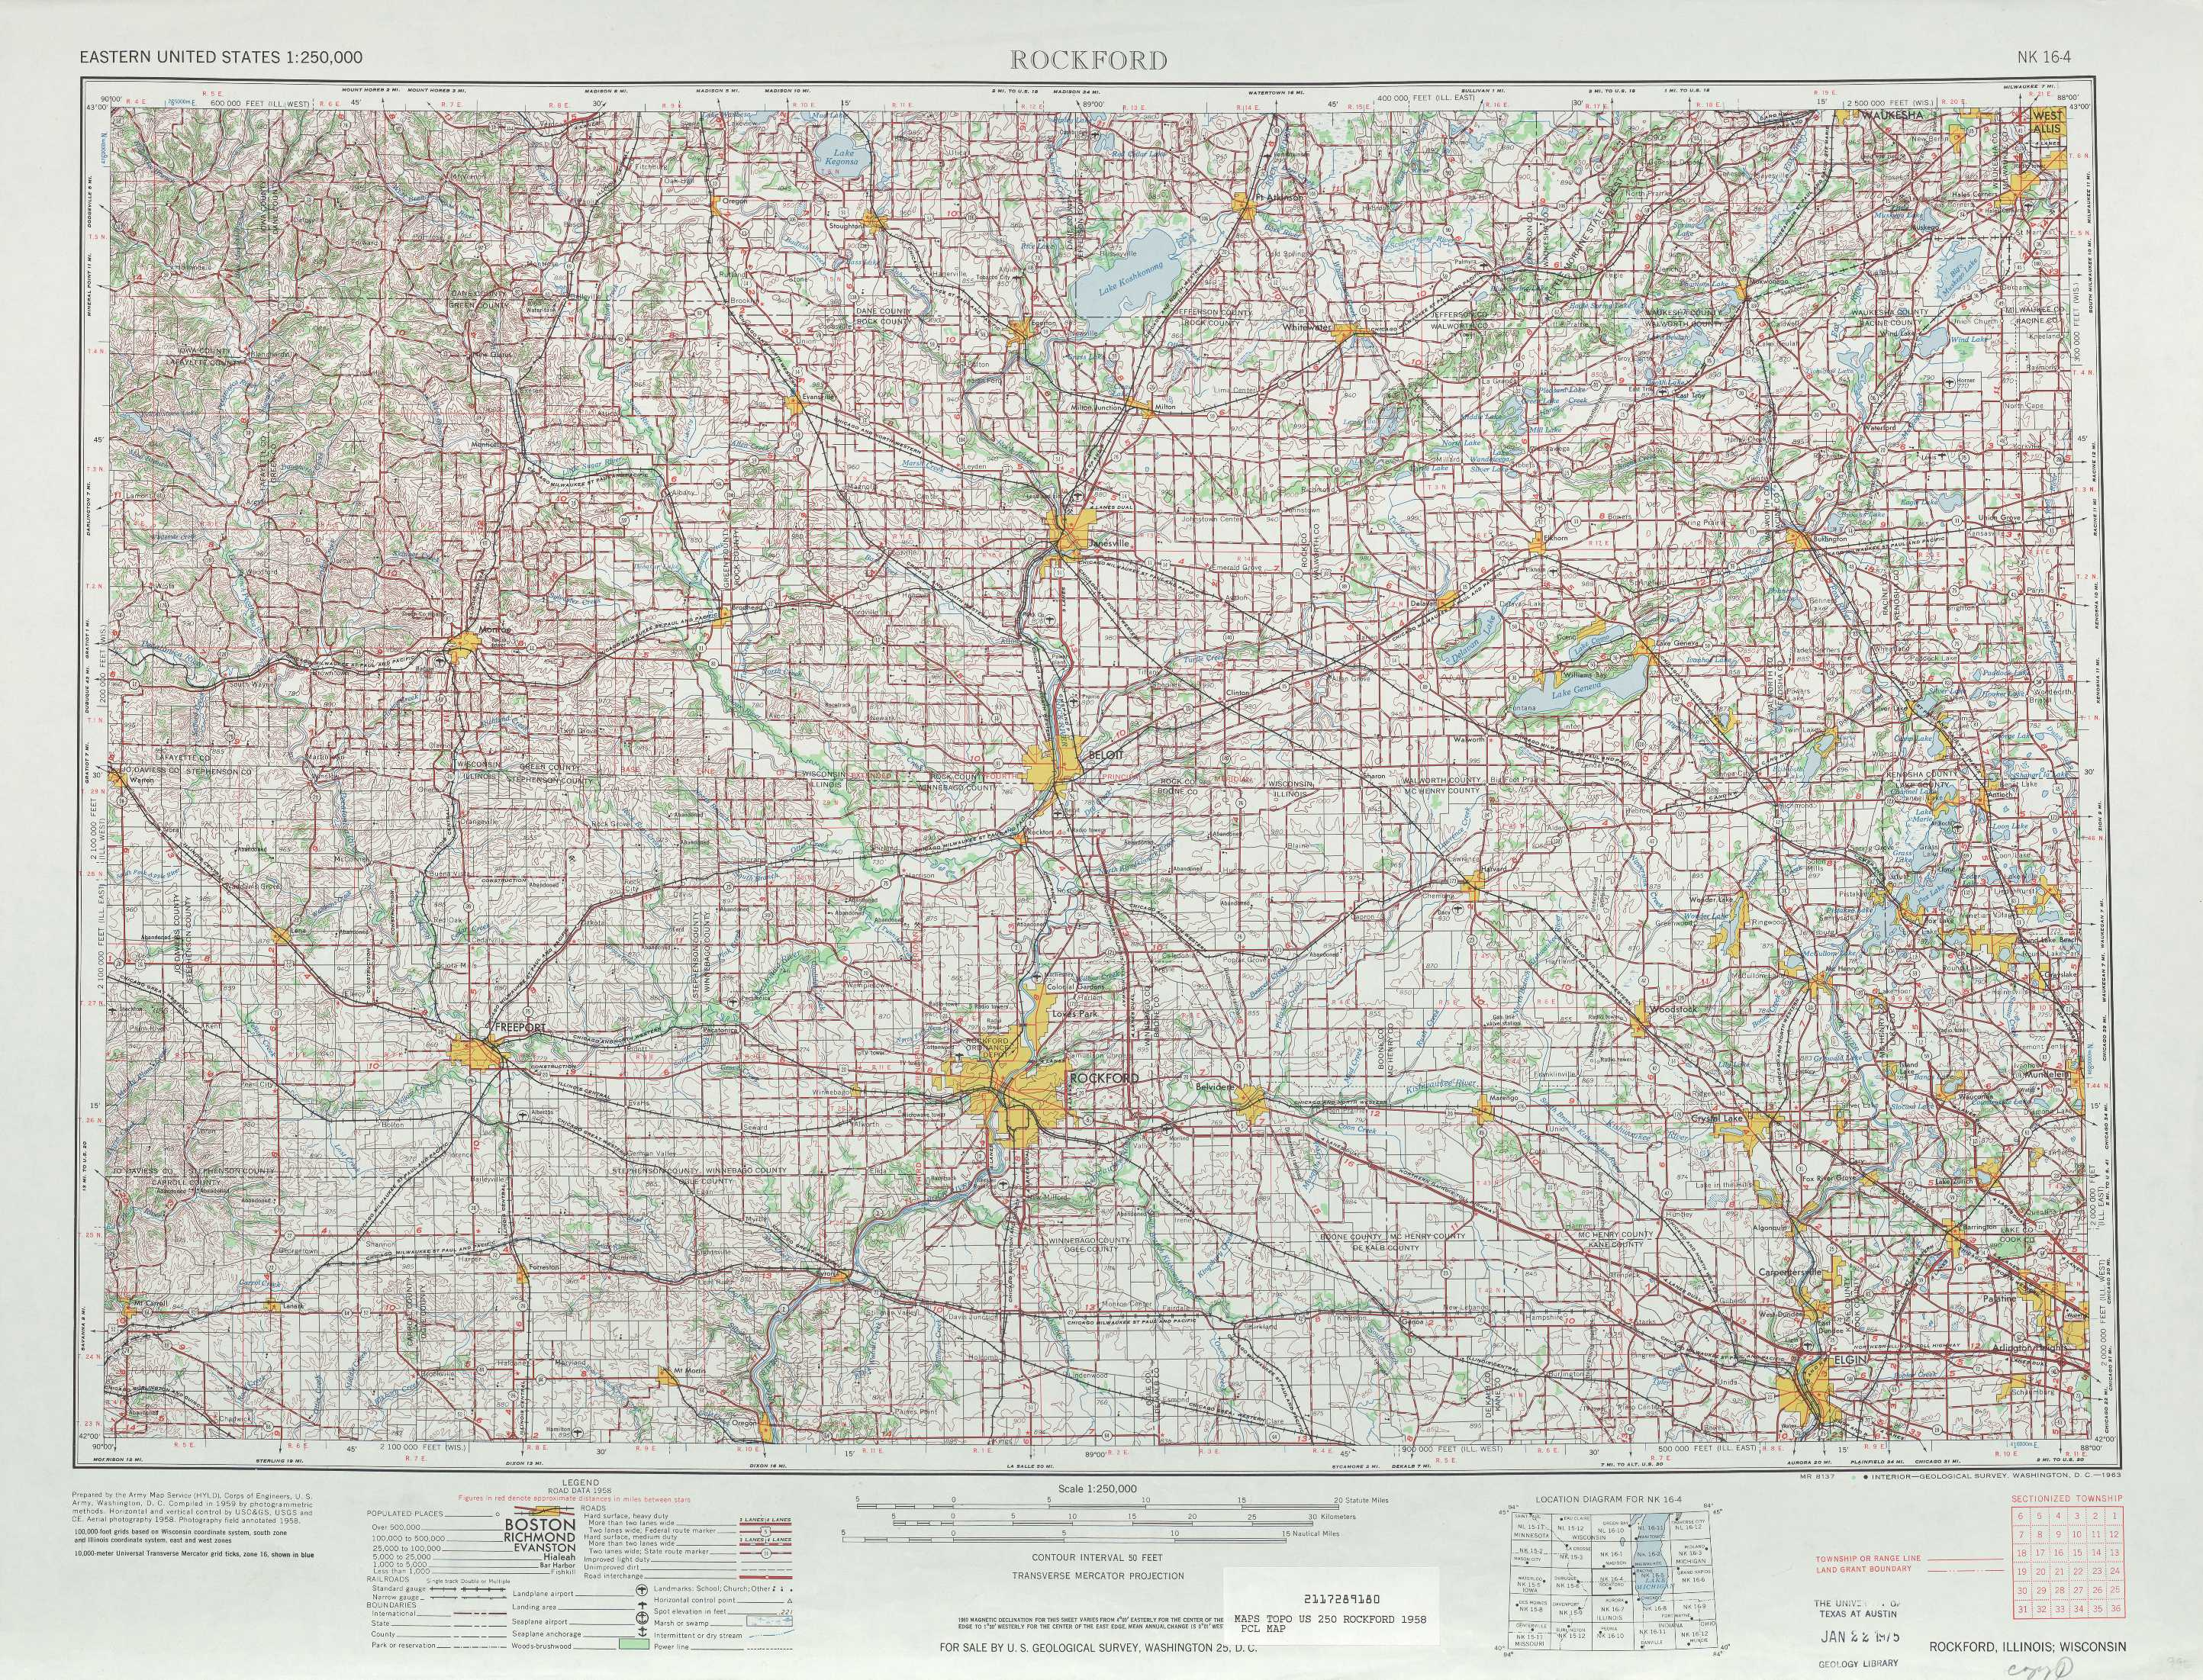 Rockford topographic maps IL WI USGS Topo Quad 42088a1 at 1